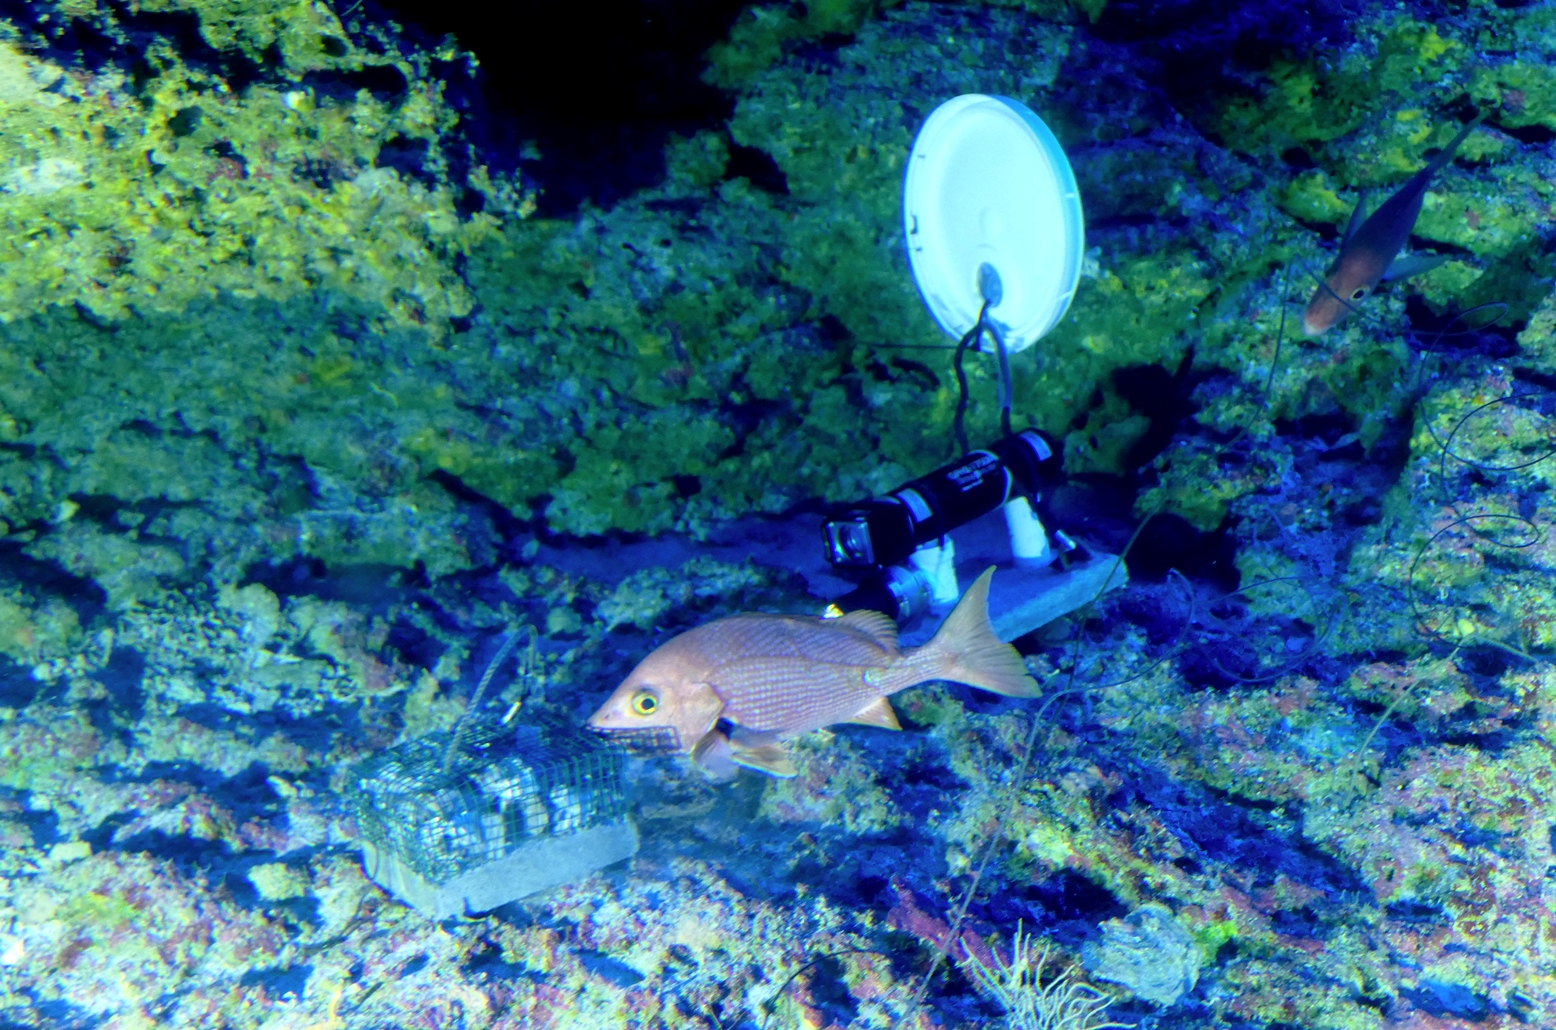 Cameras attached to bait boxes monitored marine life in the deep ocean.